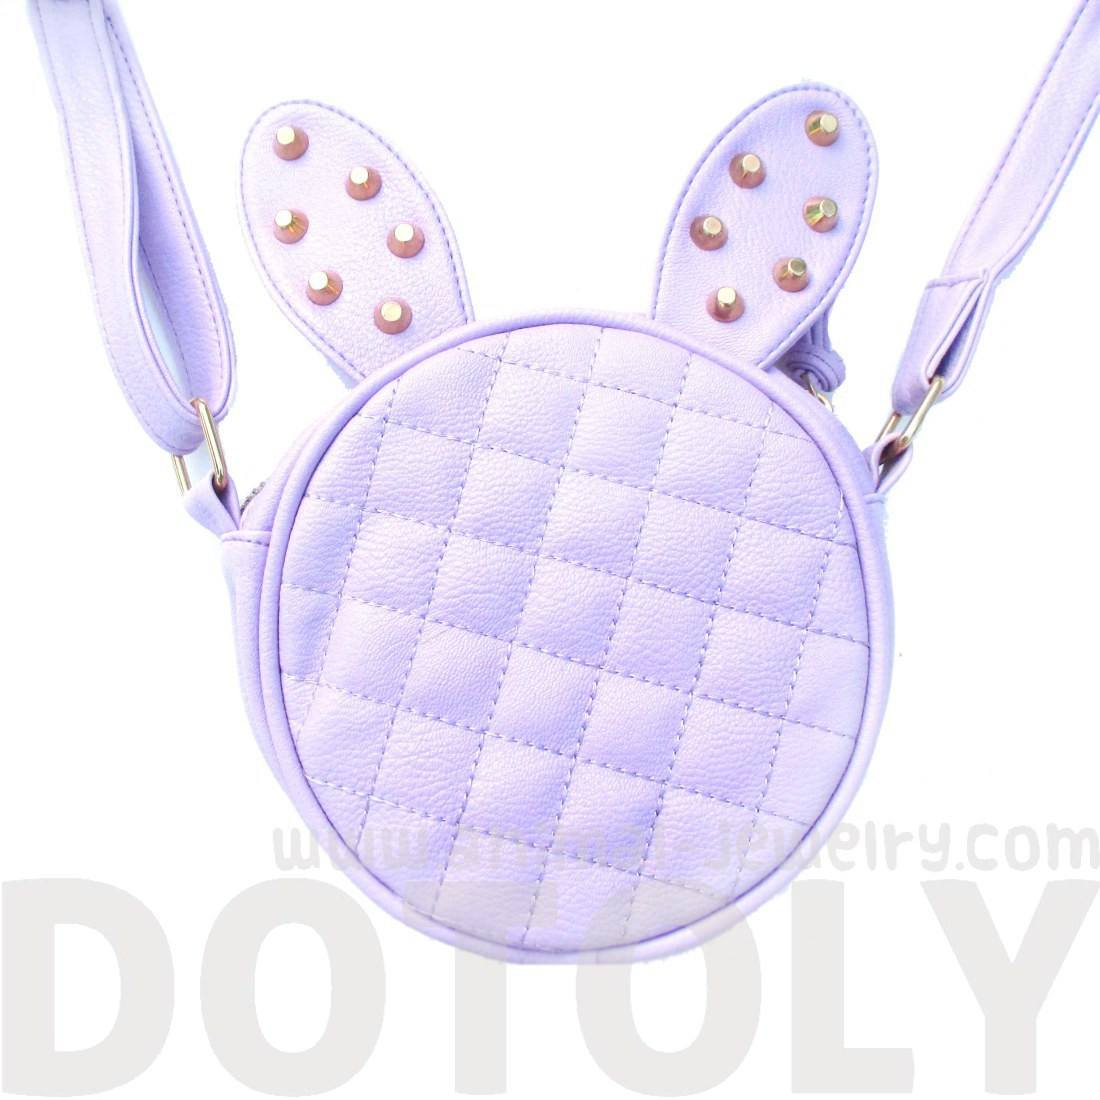 round-bunny-rabbit-ears-shaped-quilted-cross-body-shoulder-bag-in-purple-with-studs